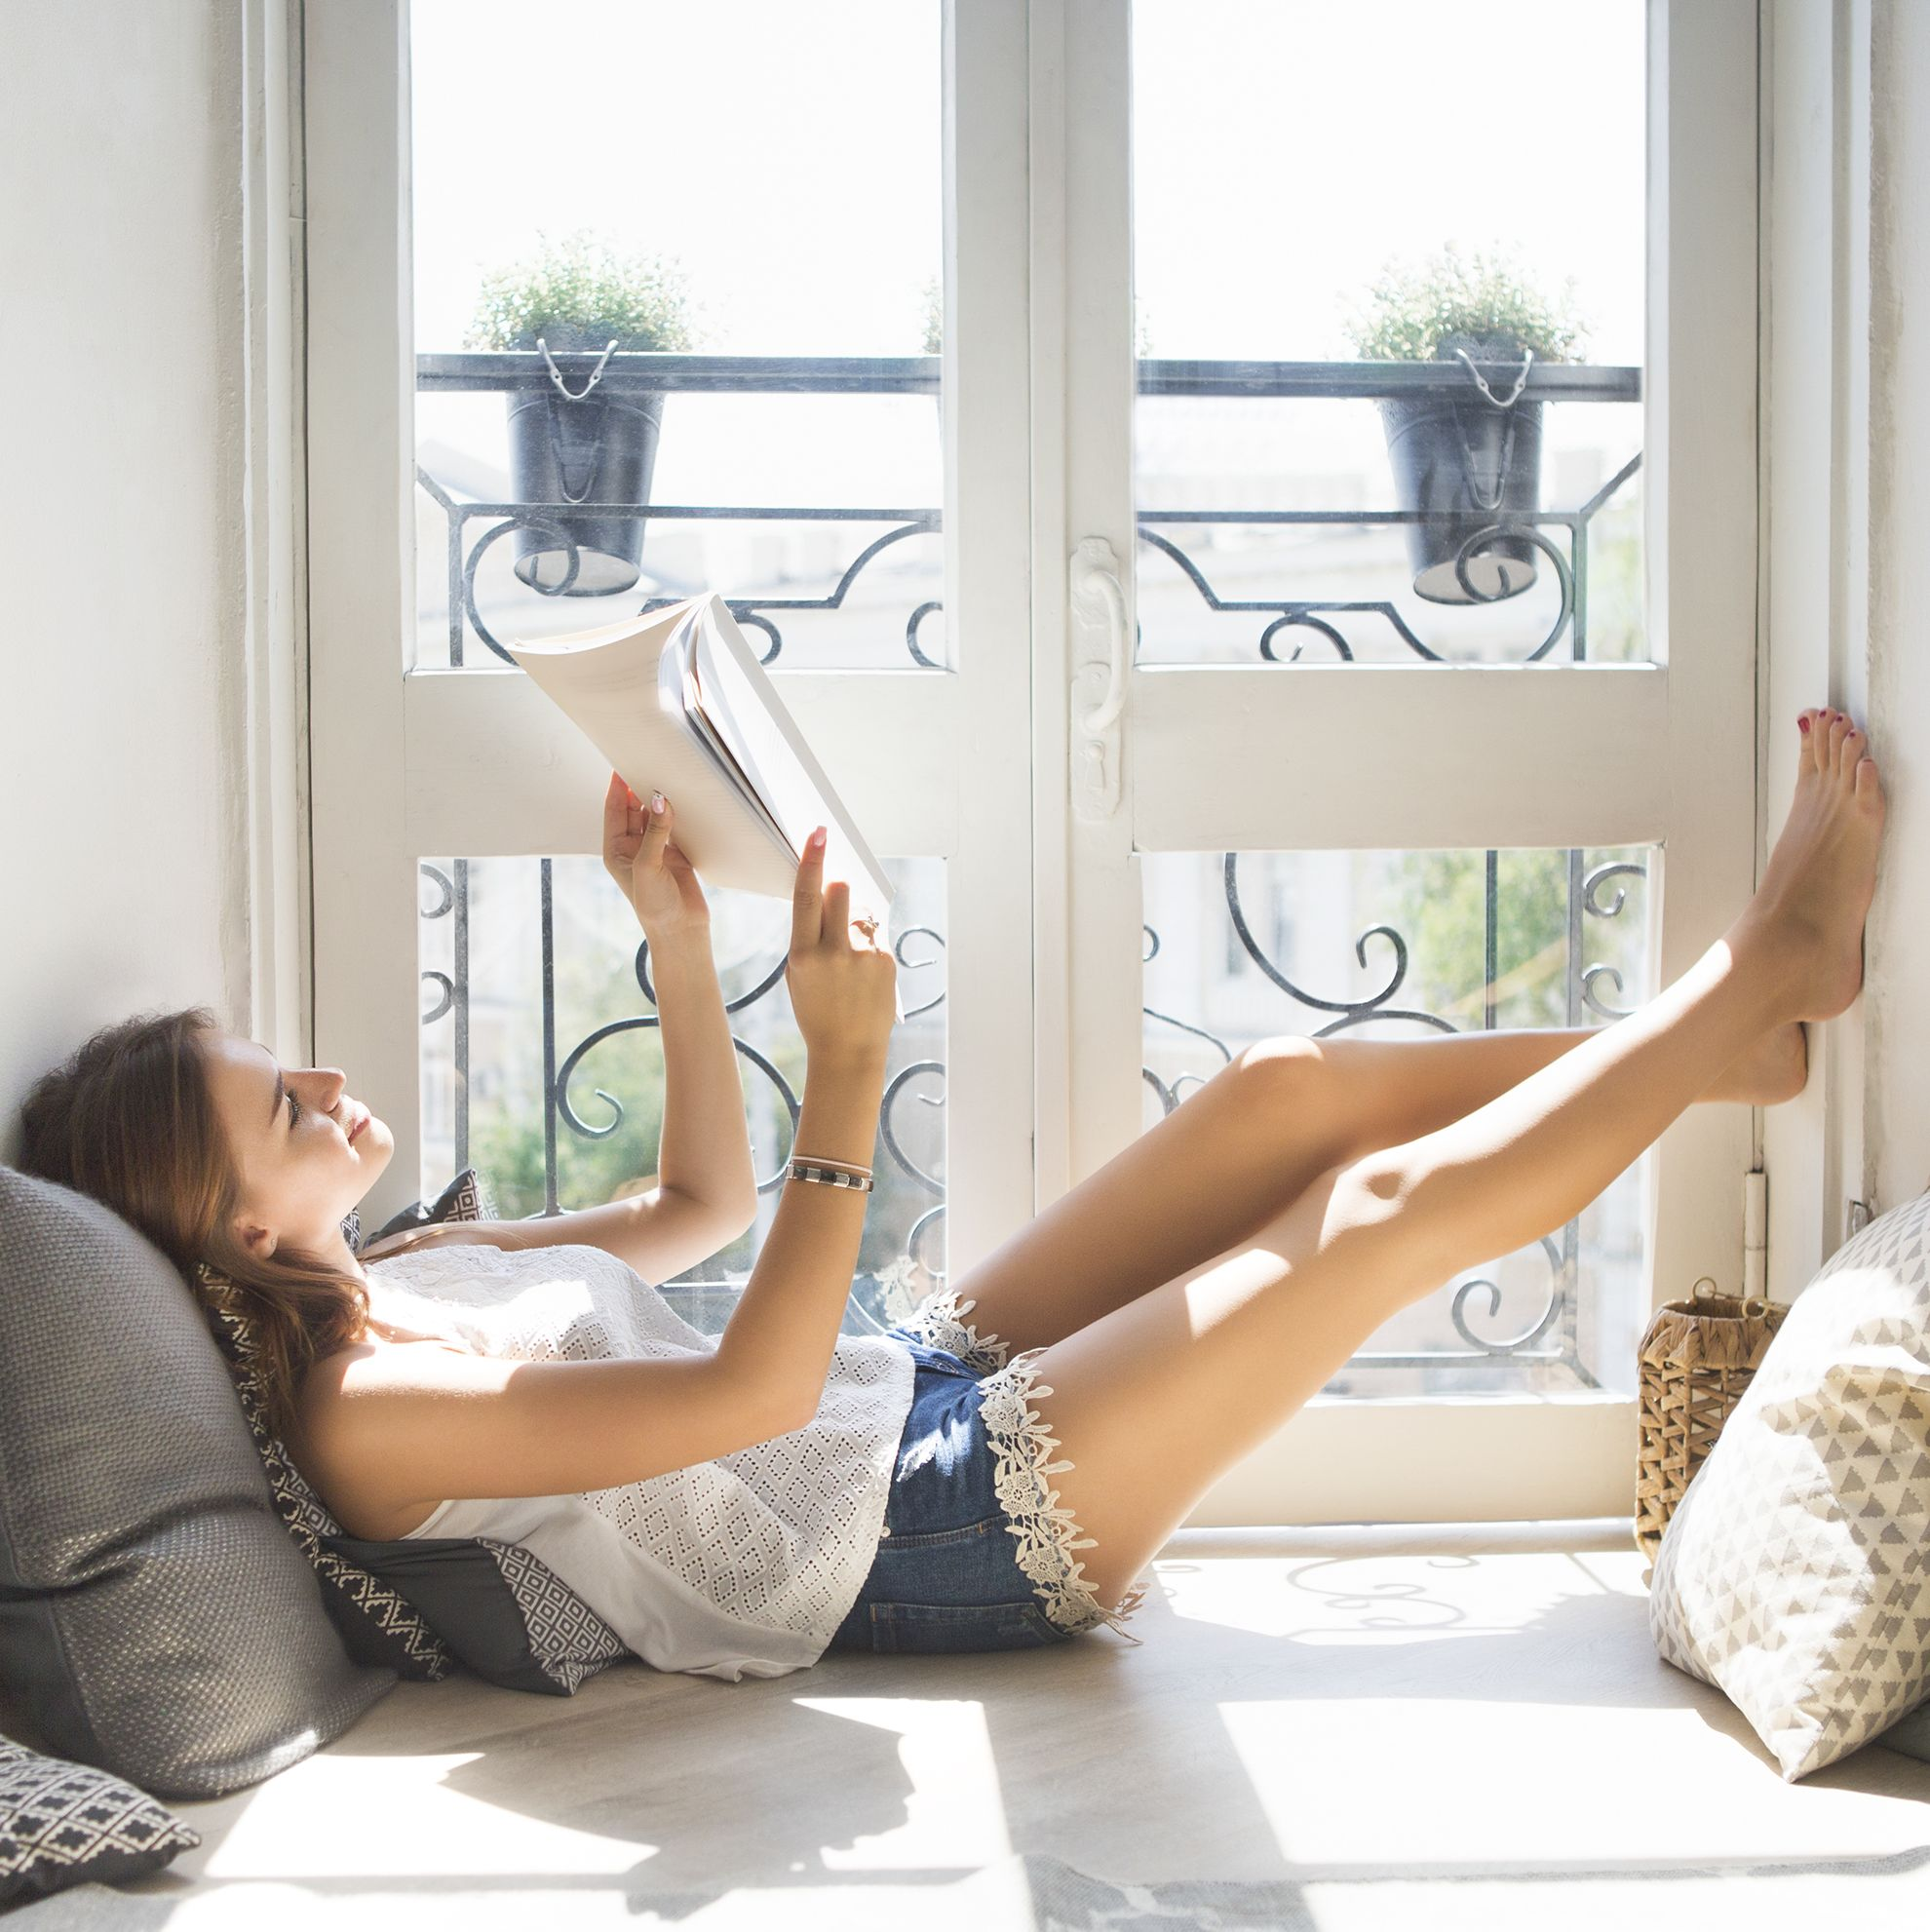 40 Creative Things to Do When You're Bored to Pass the Time